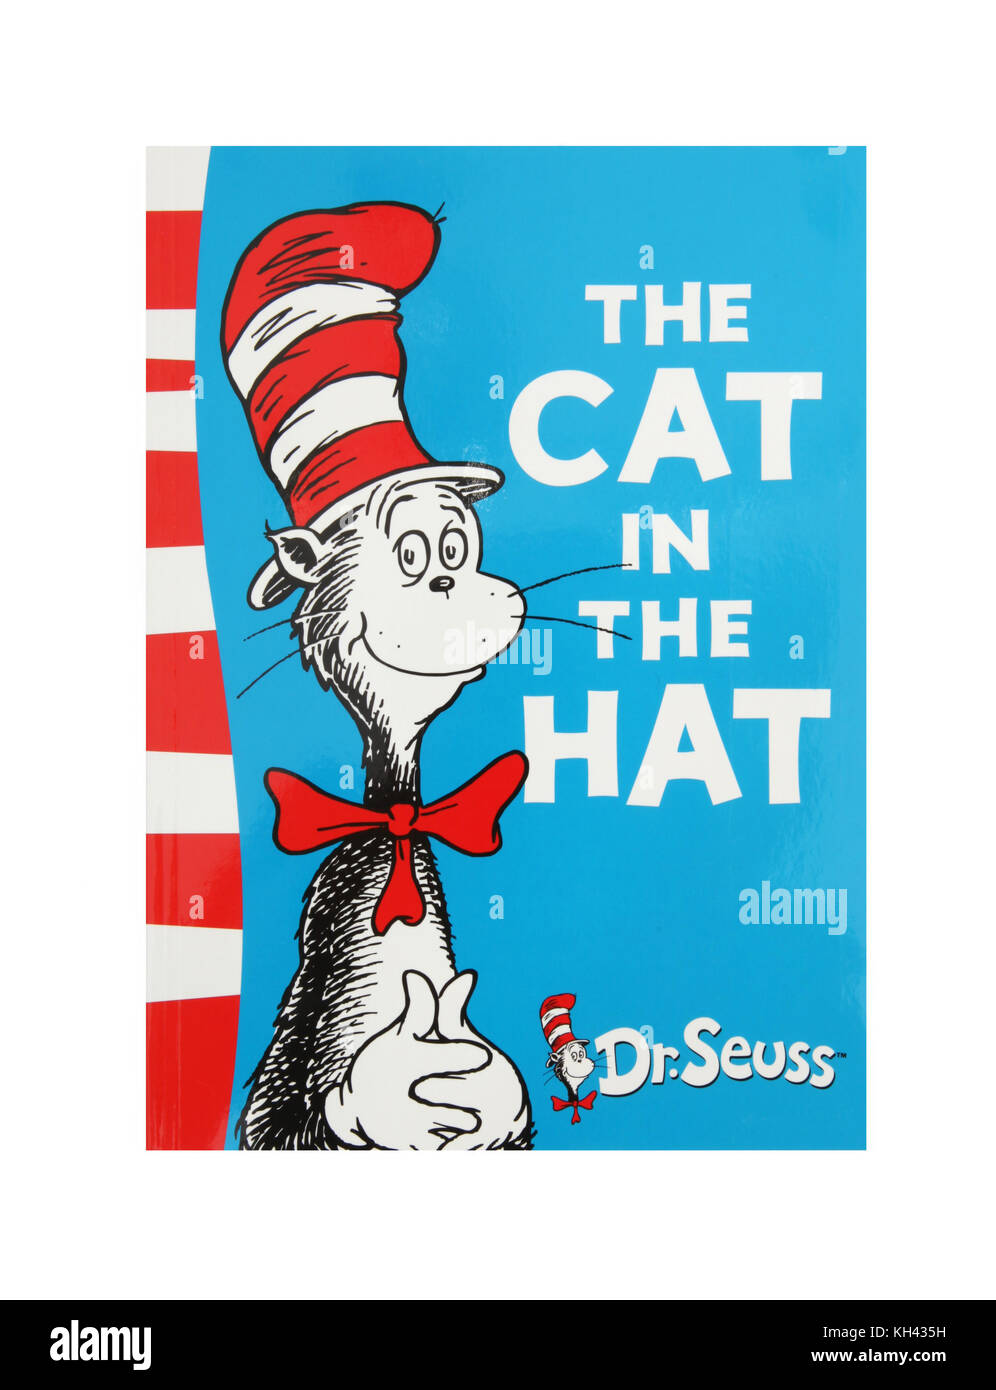 an analysis of the cat in the hat a book by dr seuss This week 'the cat in the hat' by dr seuss turns 60 learn about how the book came to be and the hidden political message in its story.